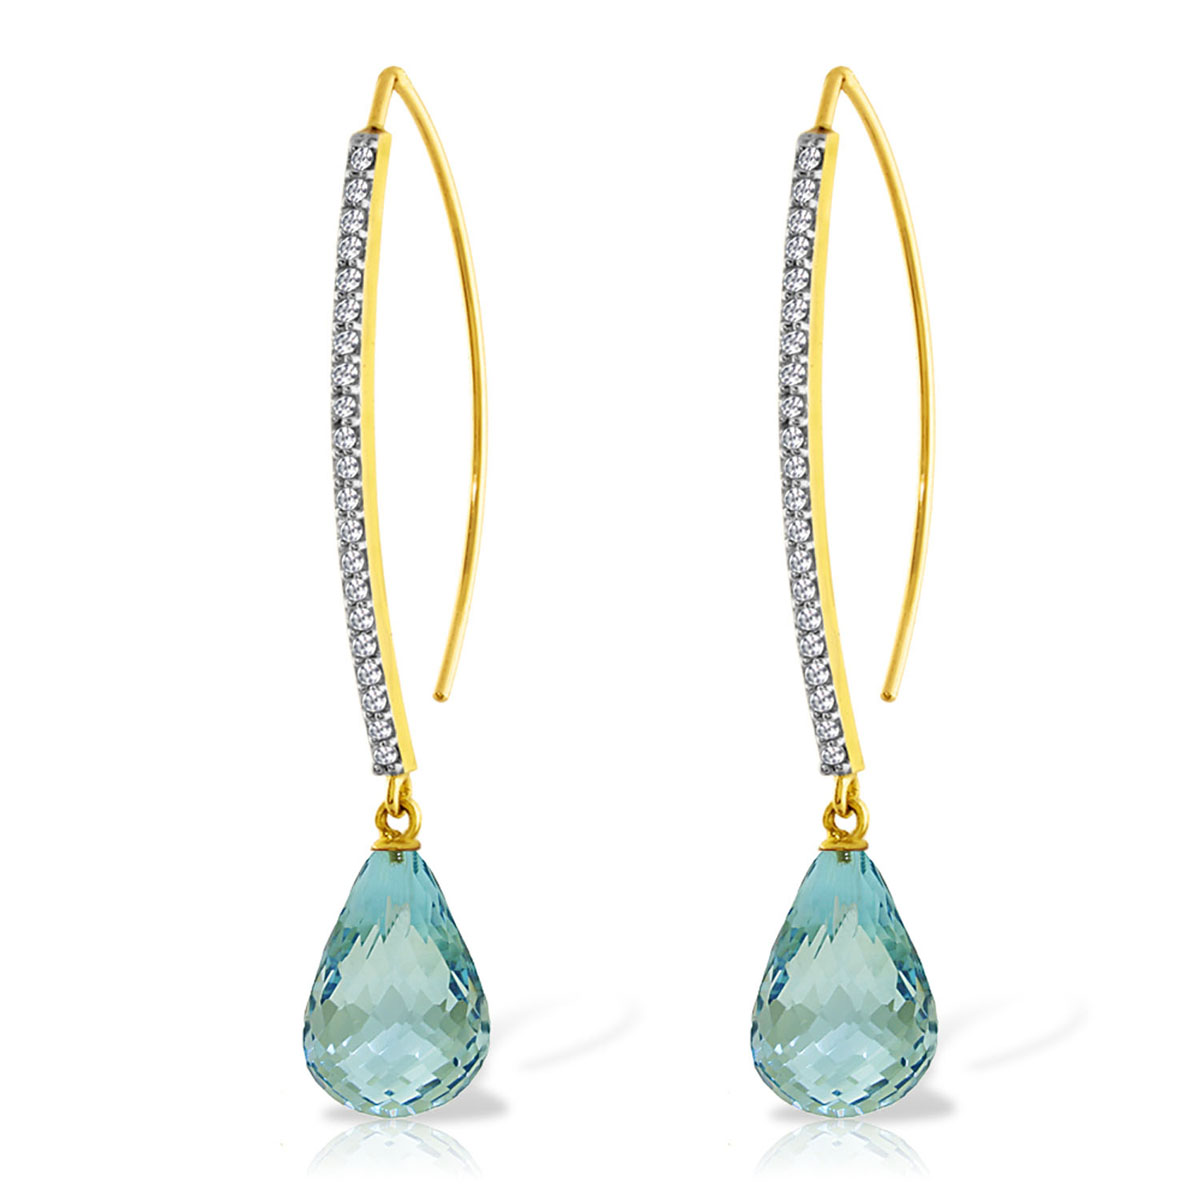 Blue Topaz & Diamond Briolette Drop Earrings in 9ct Gold